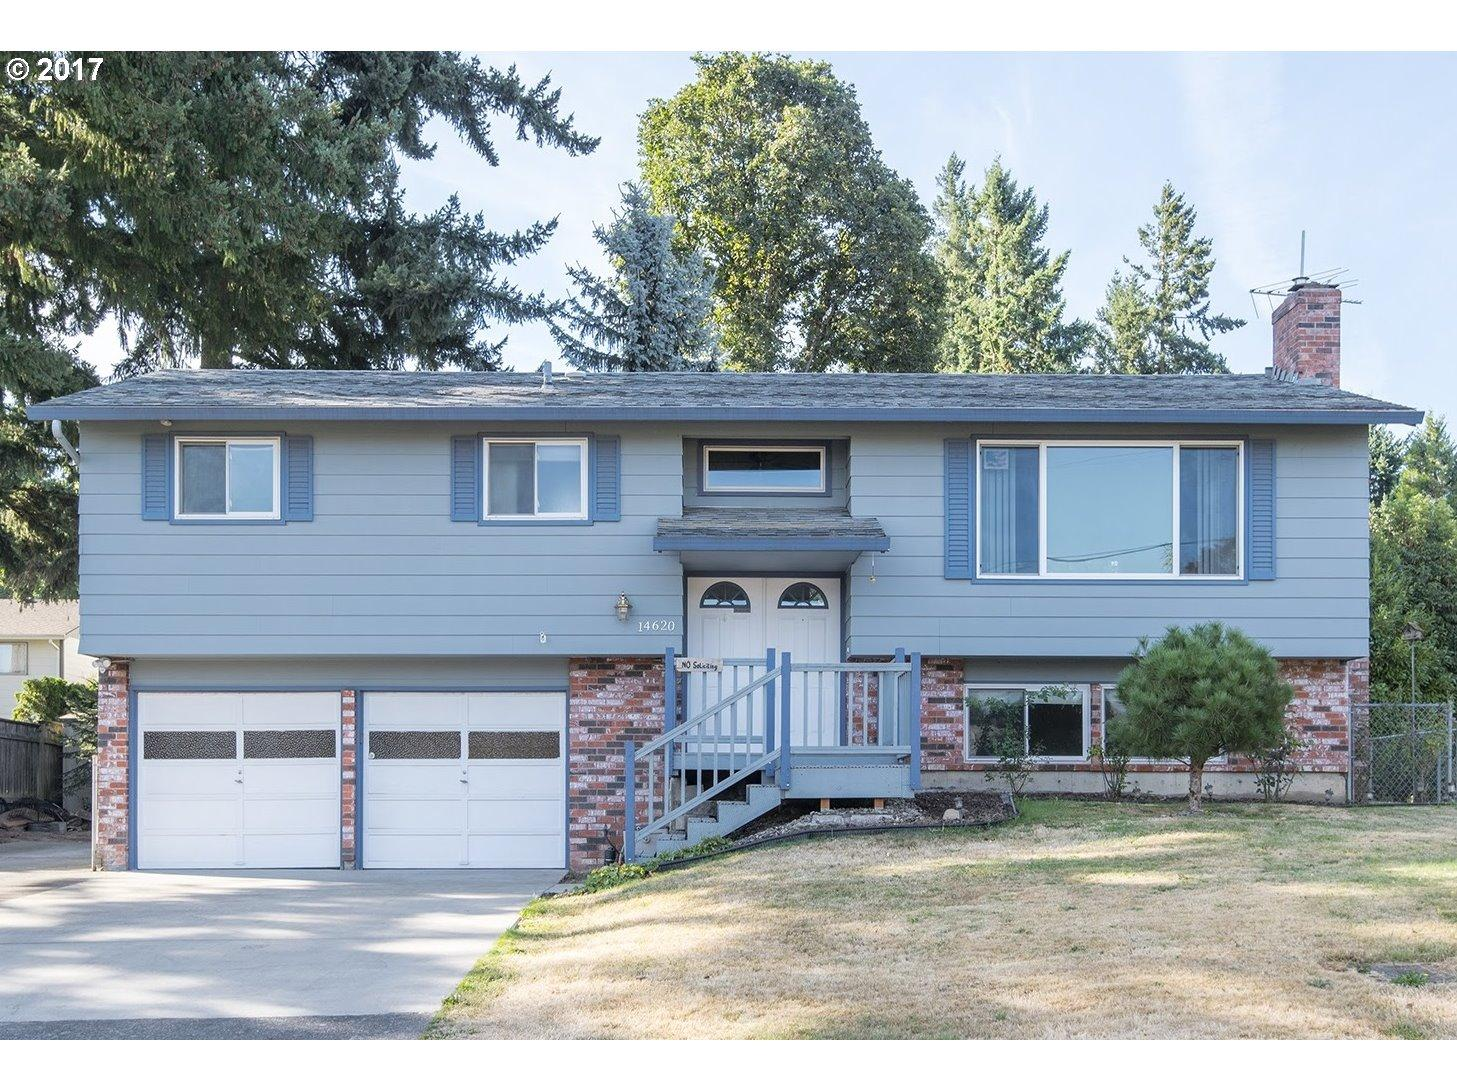 14620 Ne Broadway Portland Or Mls 17208001 Better Homes And Gardens Real Estate